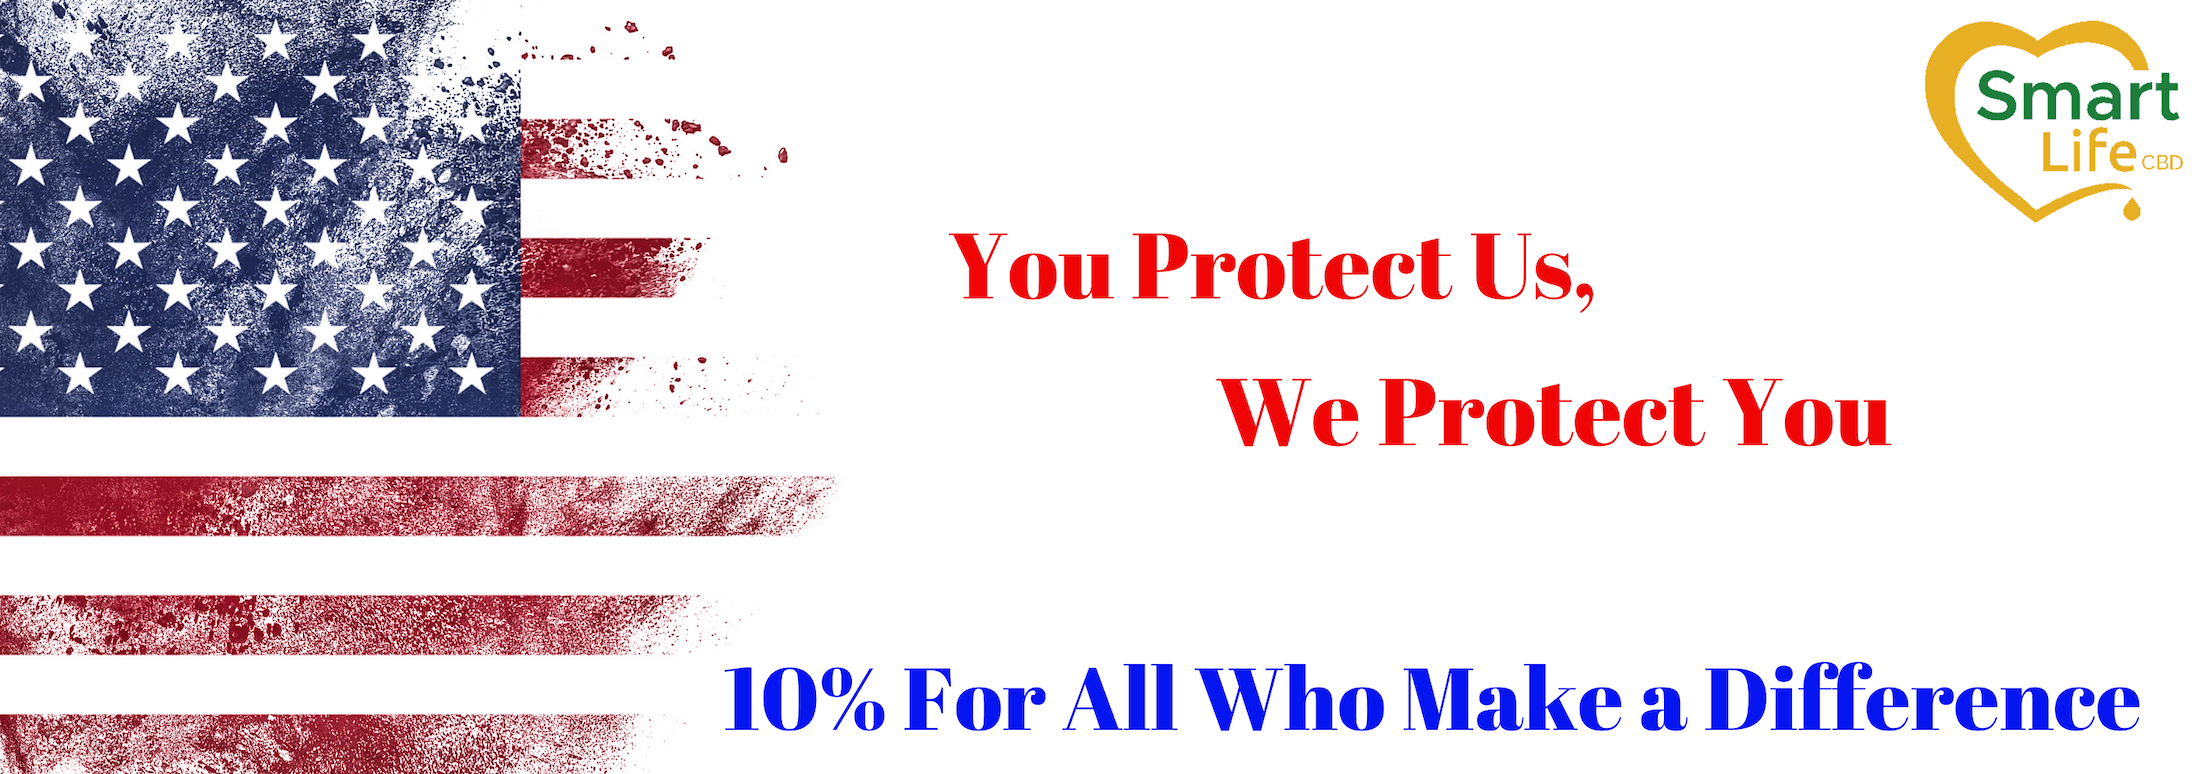 10% For All Who Make a Difference